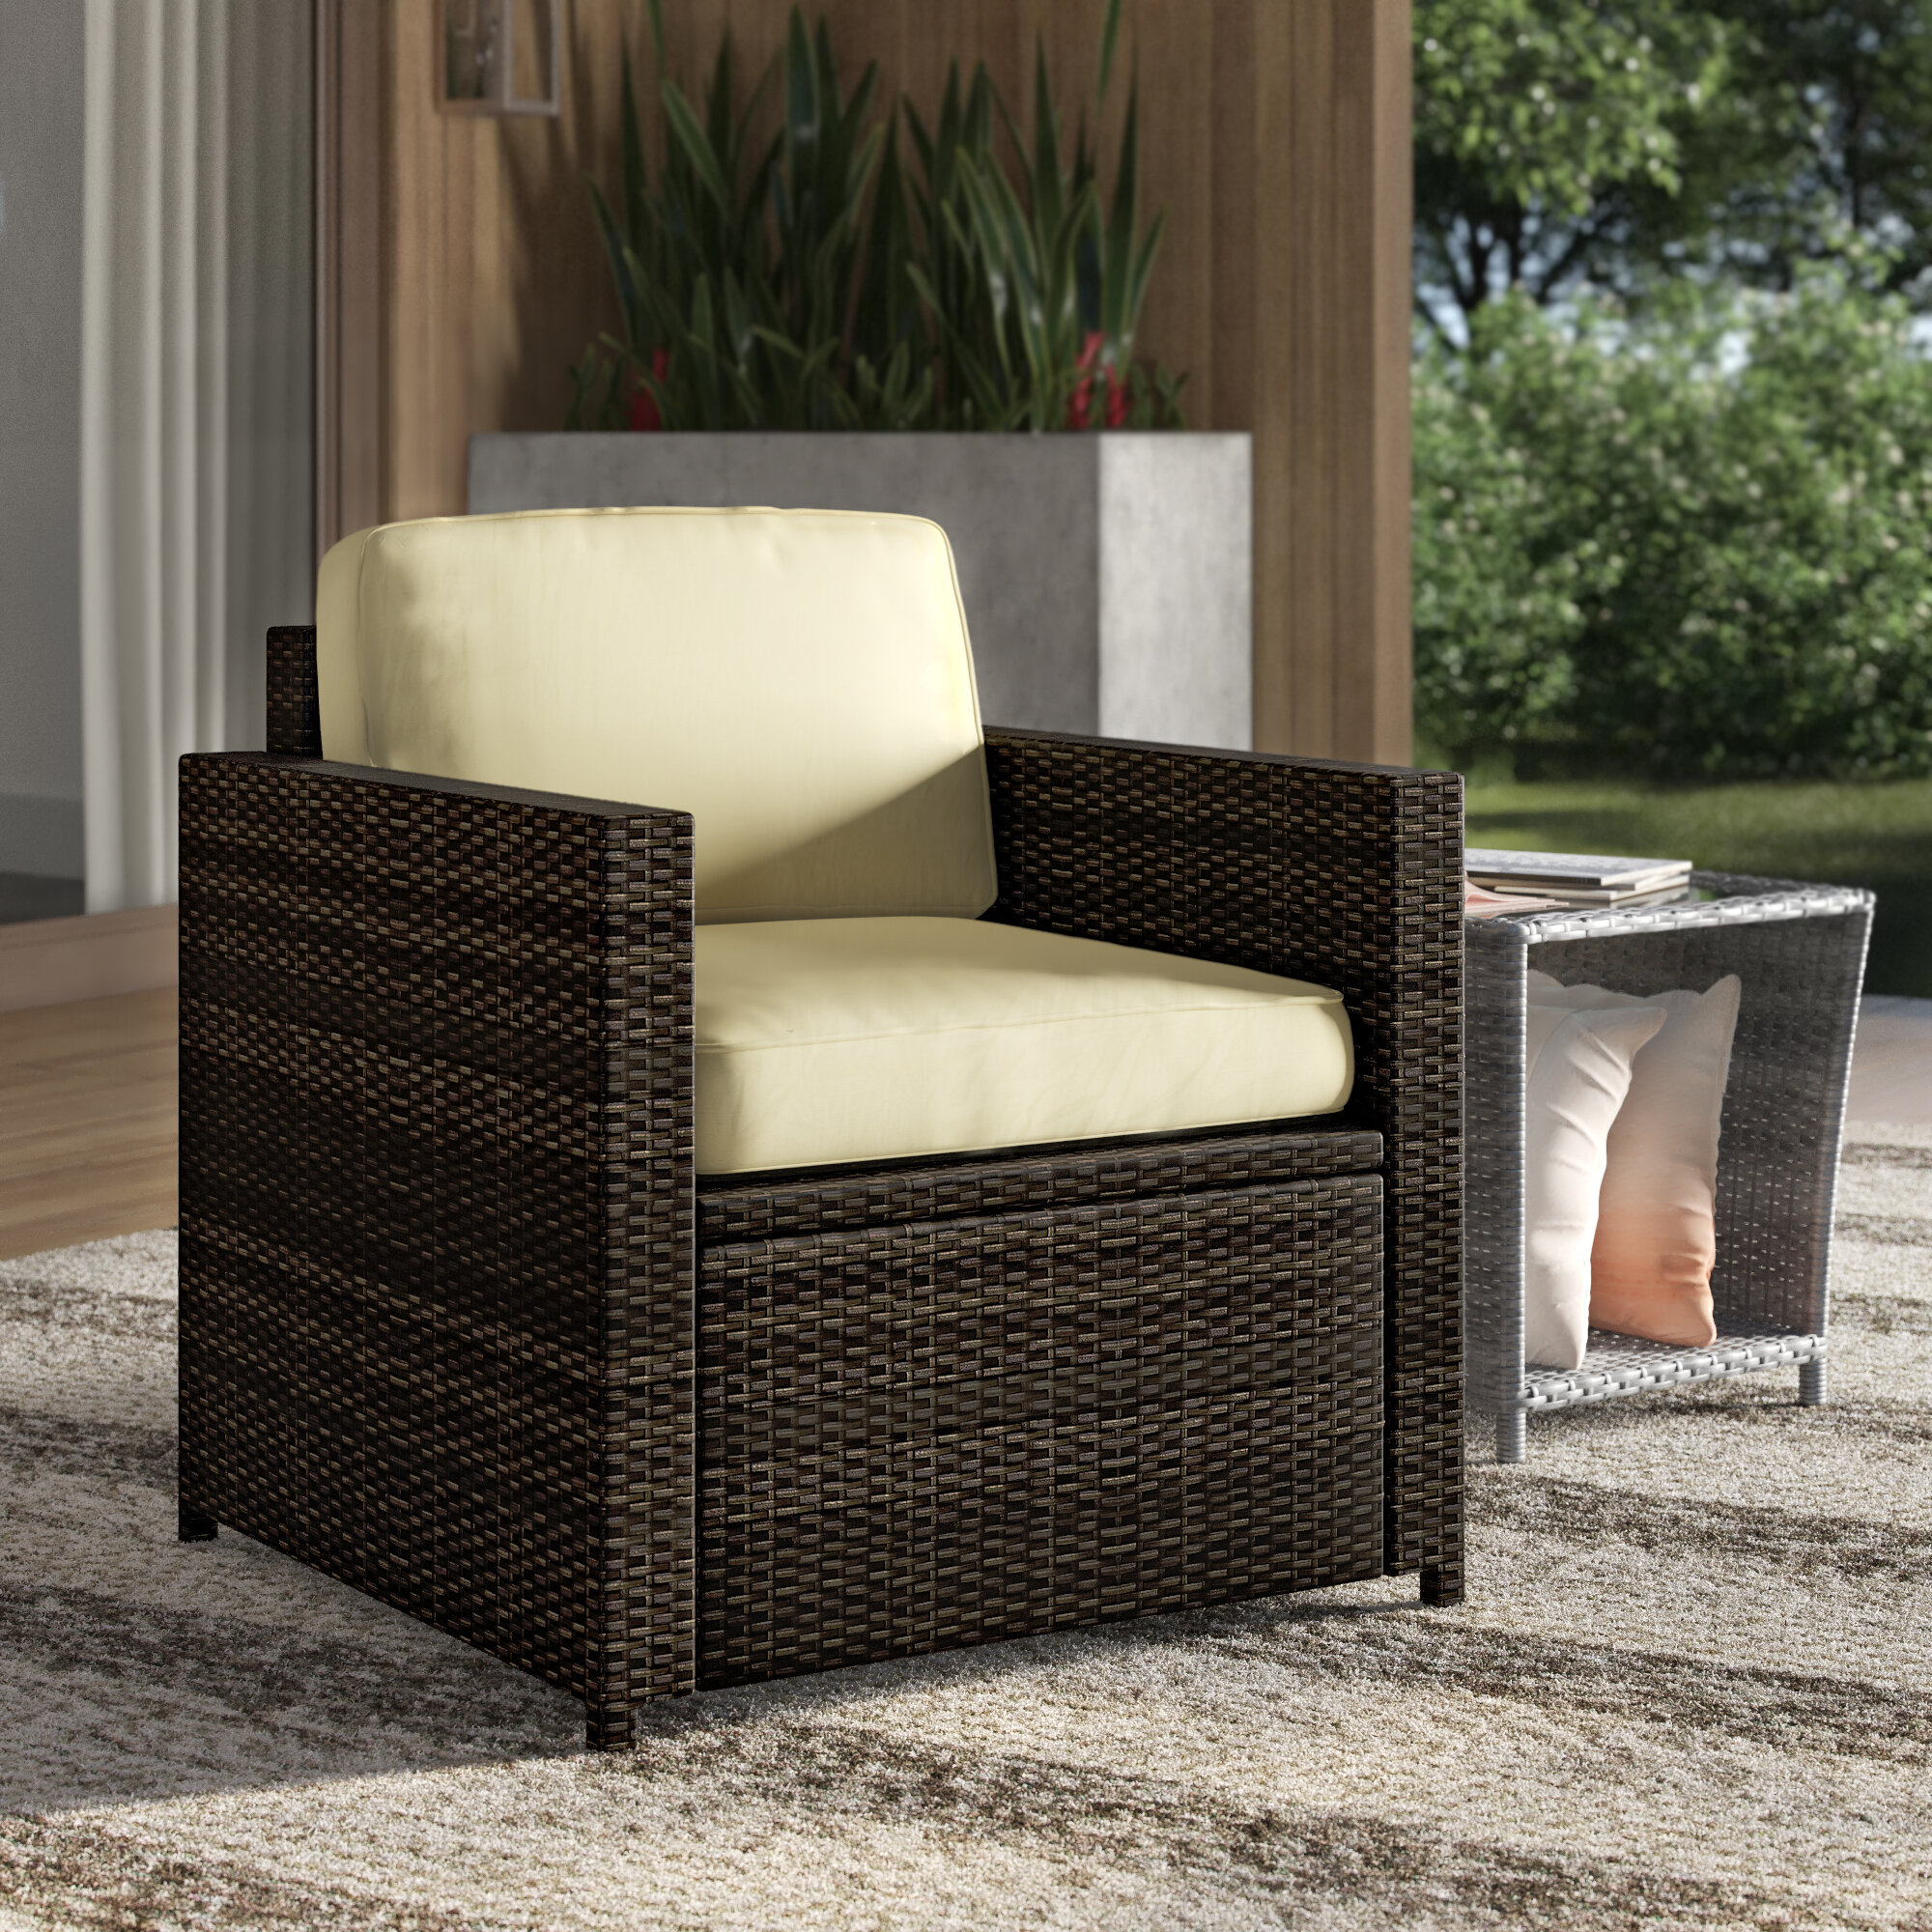 Outdoor Wicker Deep Seating Patio Chair